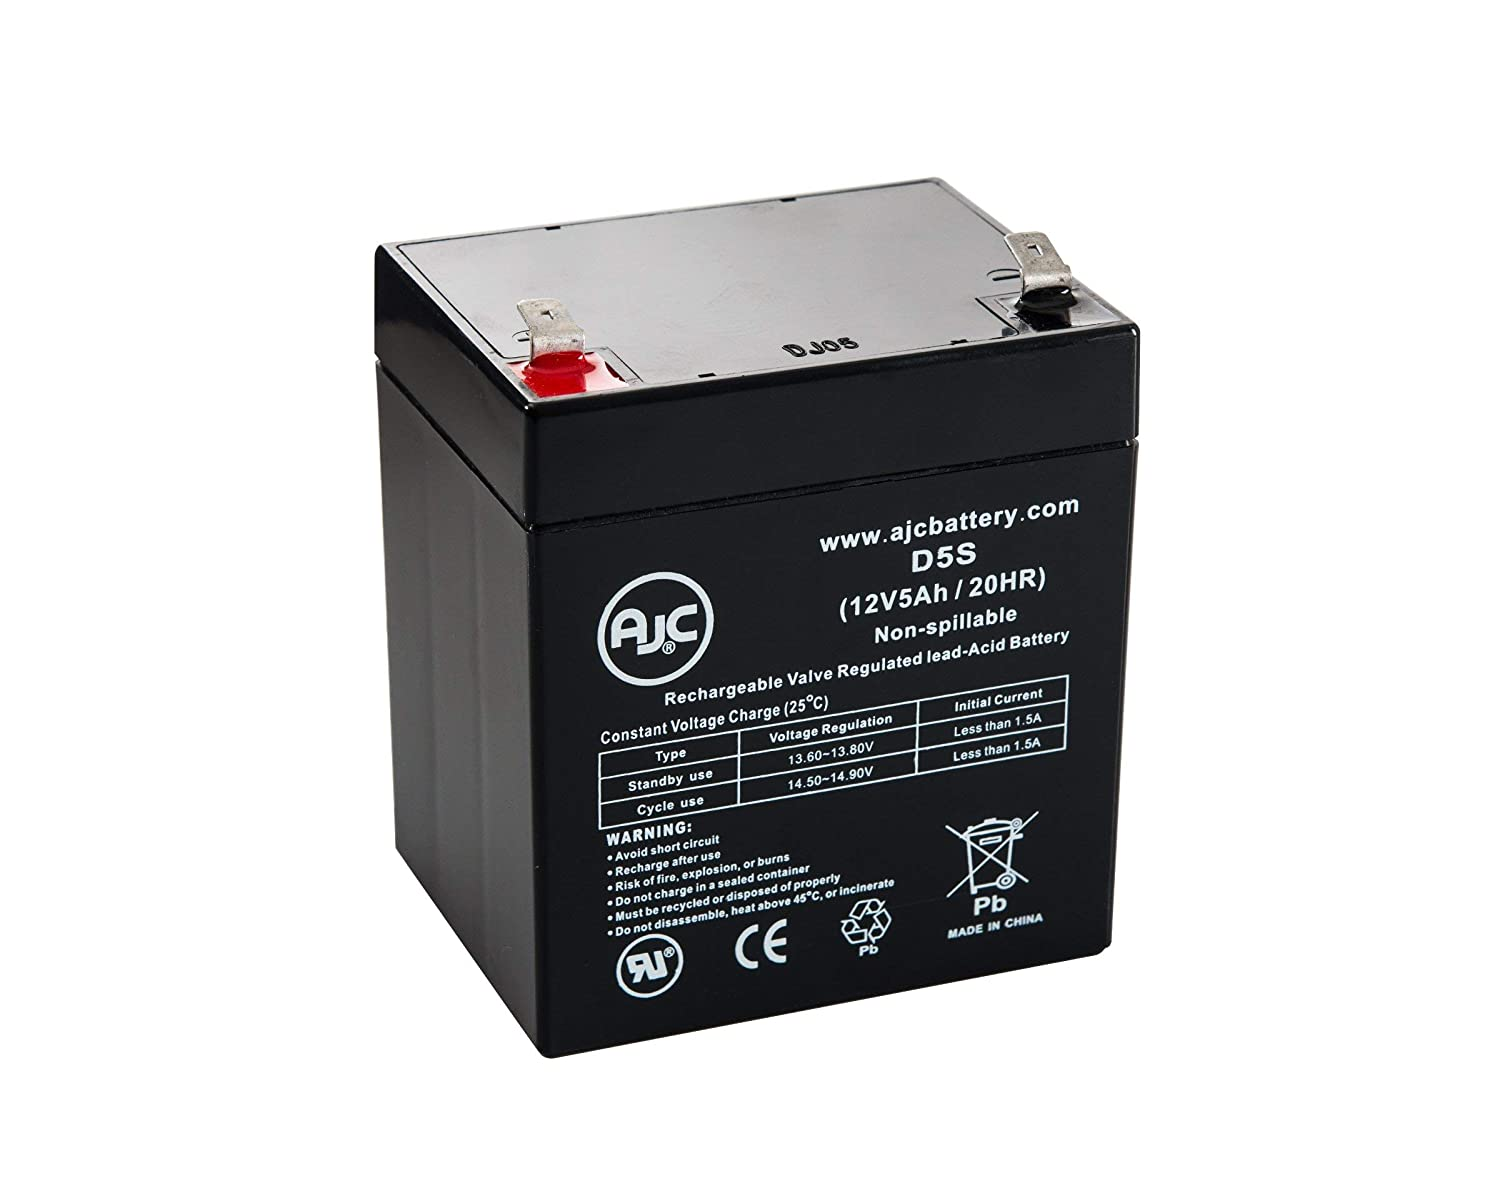 Zeus PC5-12XB 12V 5Ah Sealed Lead Acid Battery - This is an AJC Brand Replacement AJC Battery